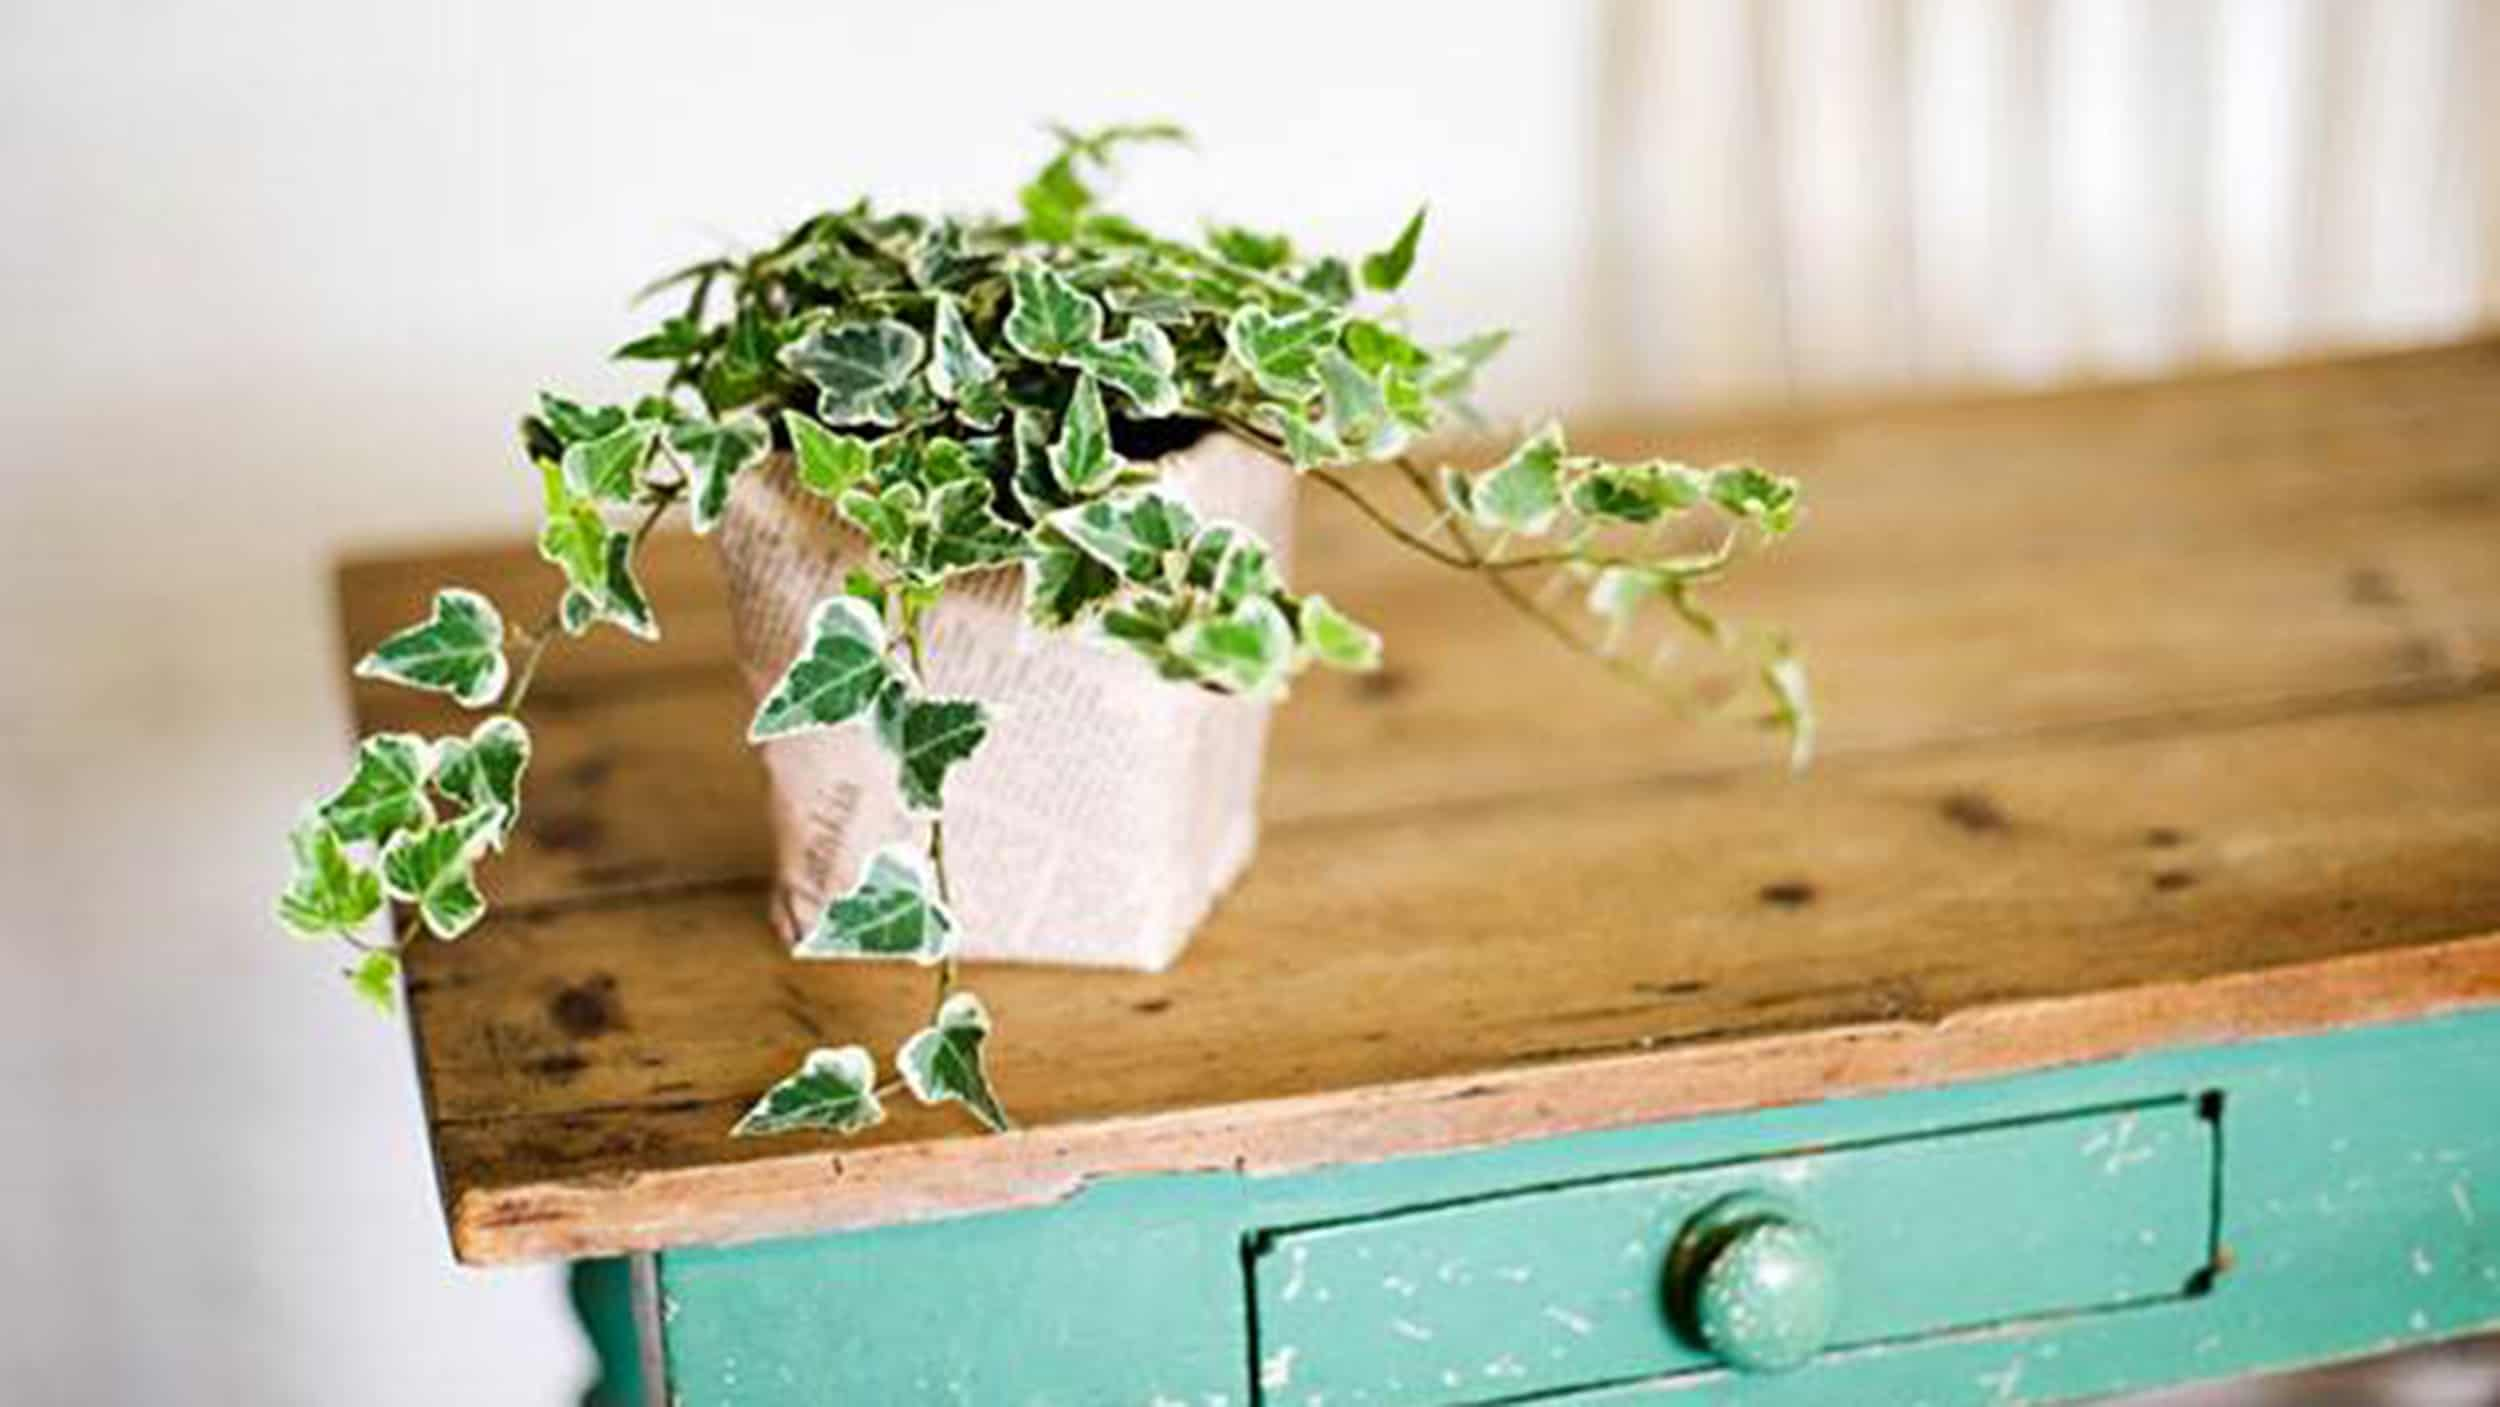 6 Indoor Plants That Will Absorb Humidity In Your Home U2022 AwesomeJelly.com